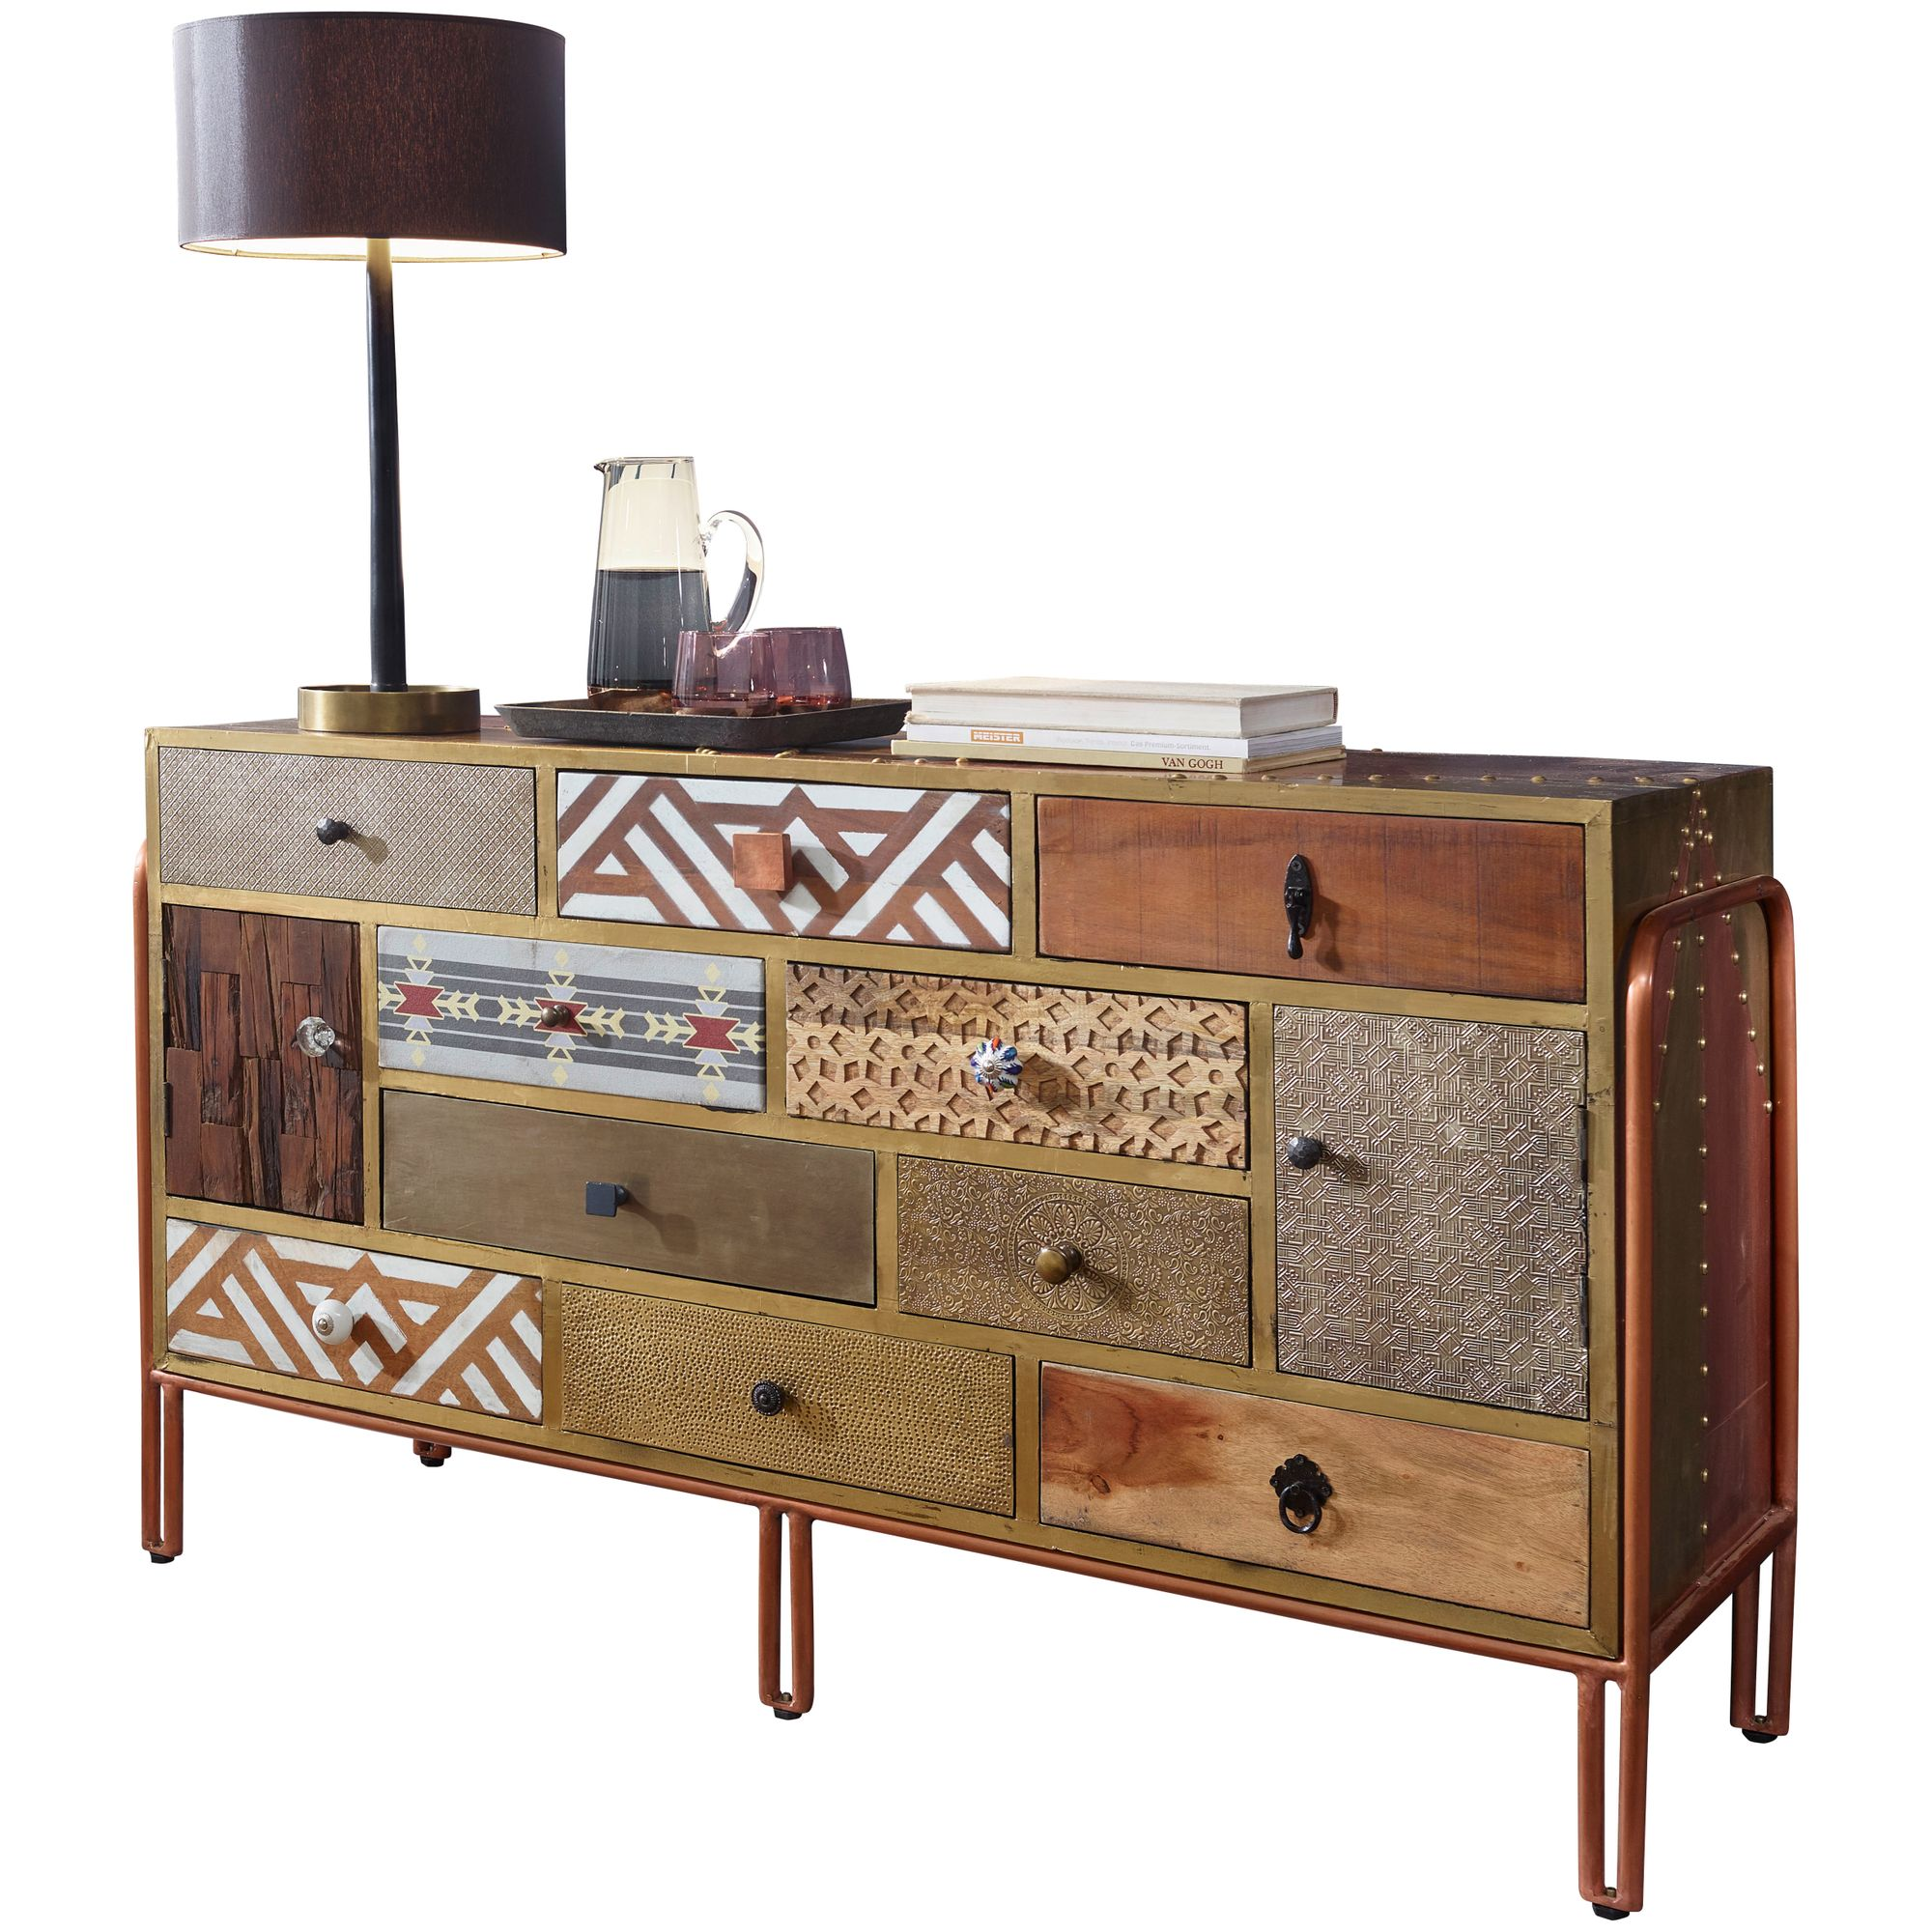 Finebuy Sideboard Finley 137x81x45 Cm Metall Anrichte Industrial